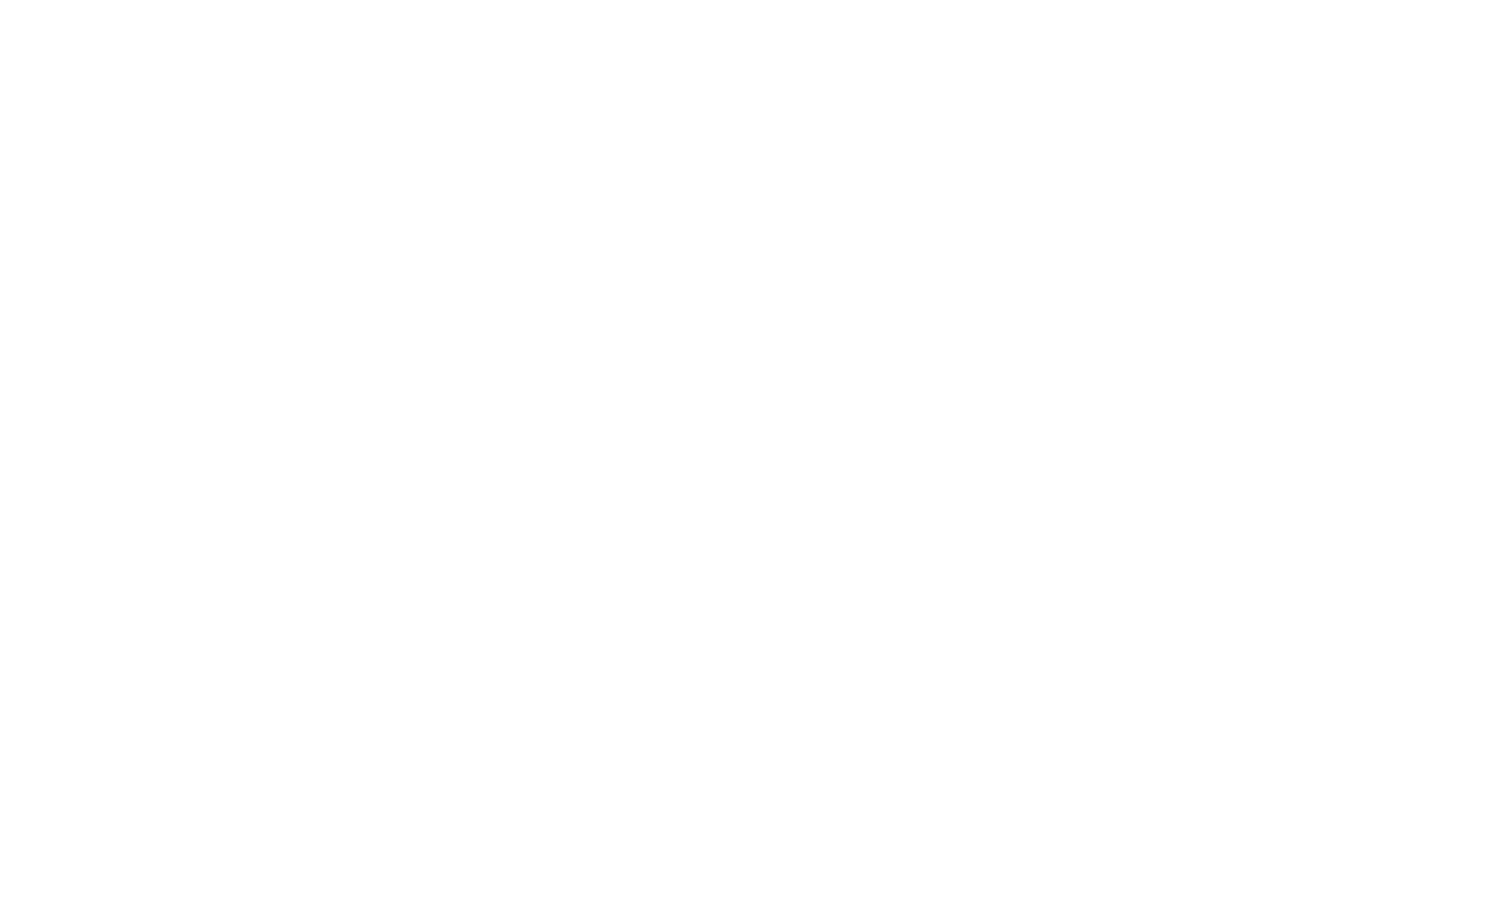 Grit Mouthguards